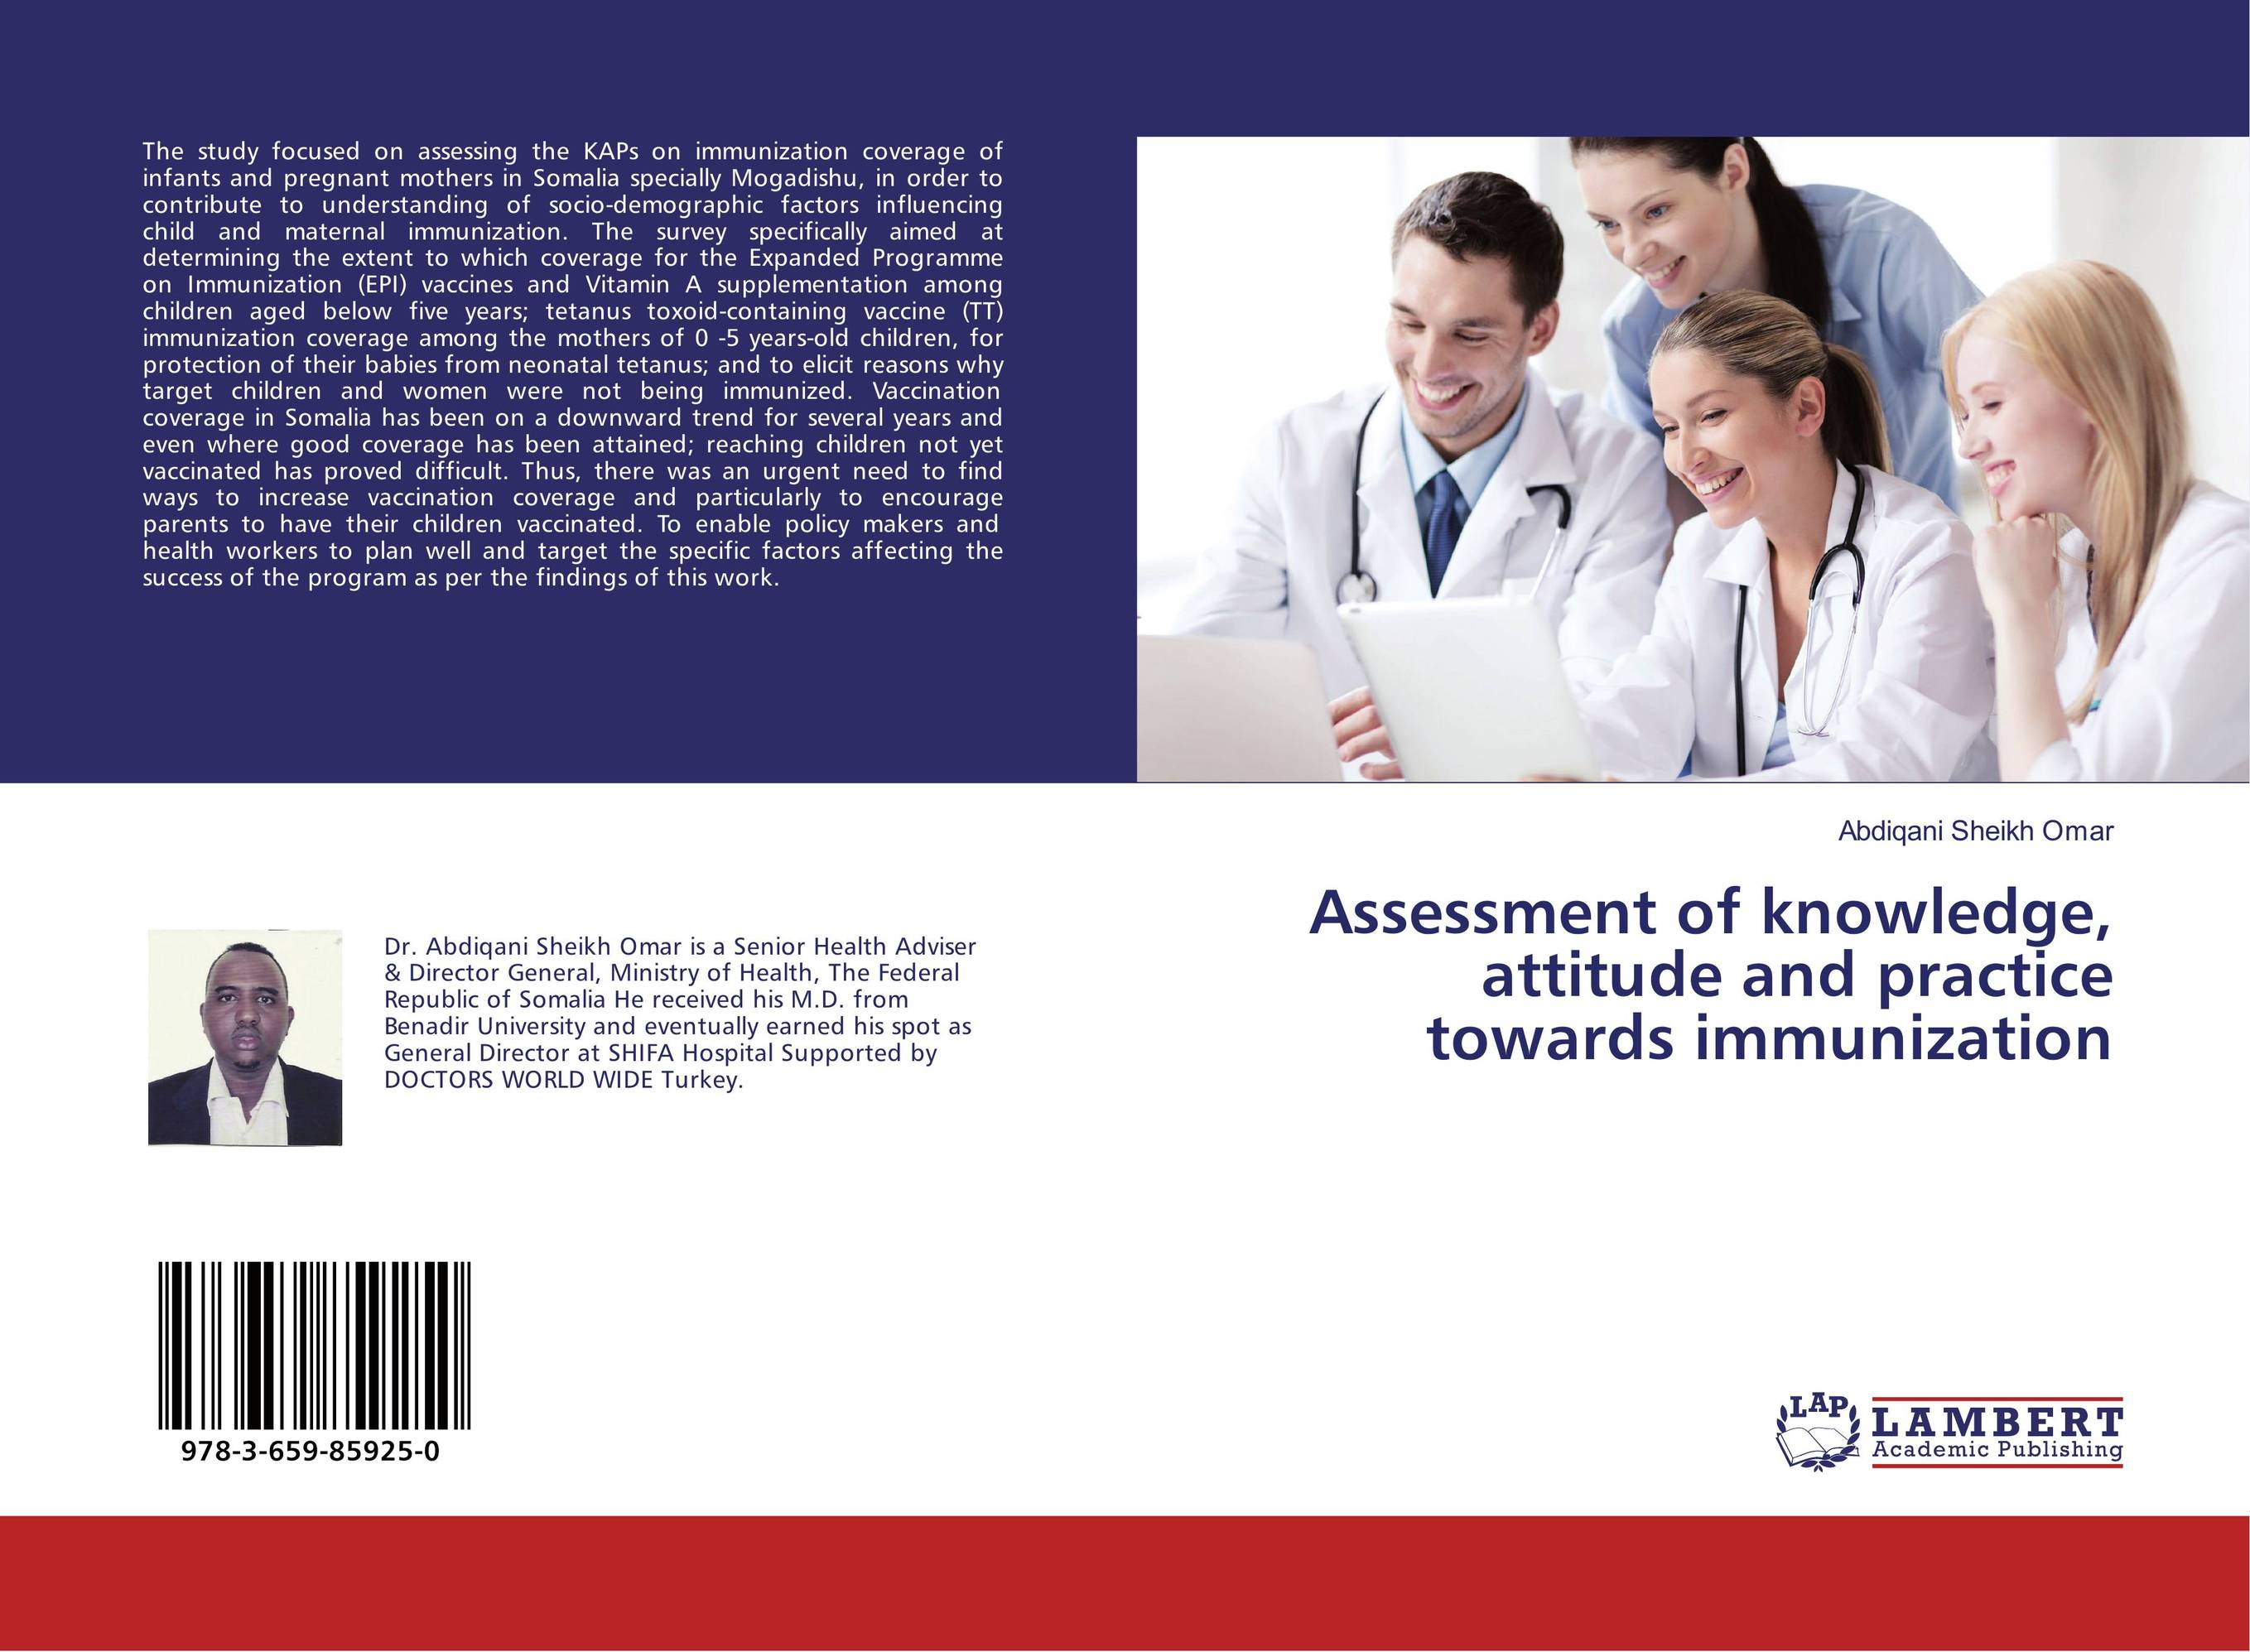 Assessment of knowledge, attitude and practice towards immunization depression among school aged epileptic children and their siblings